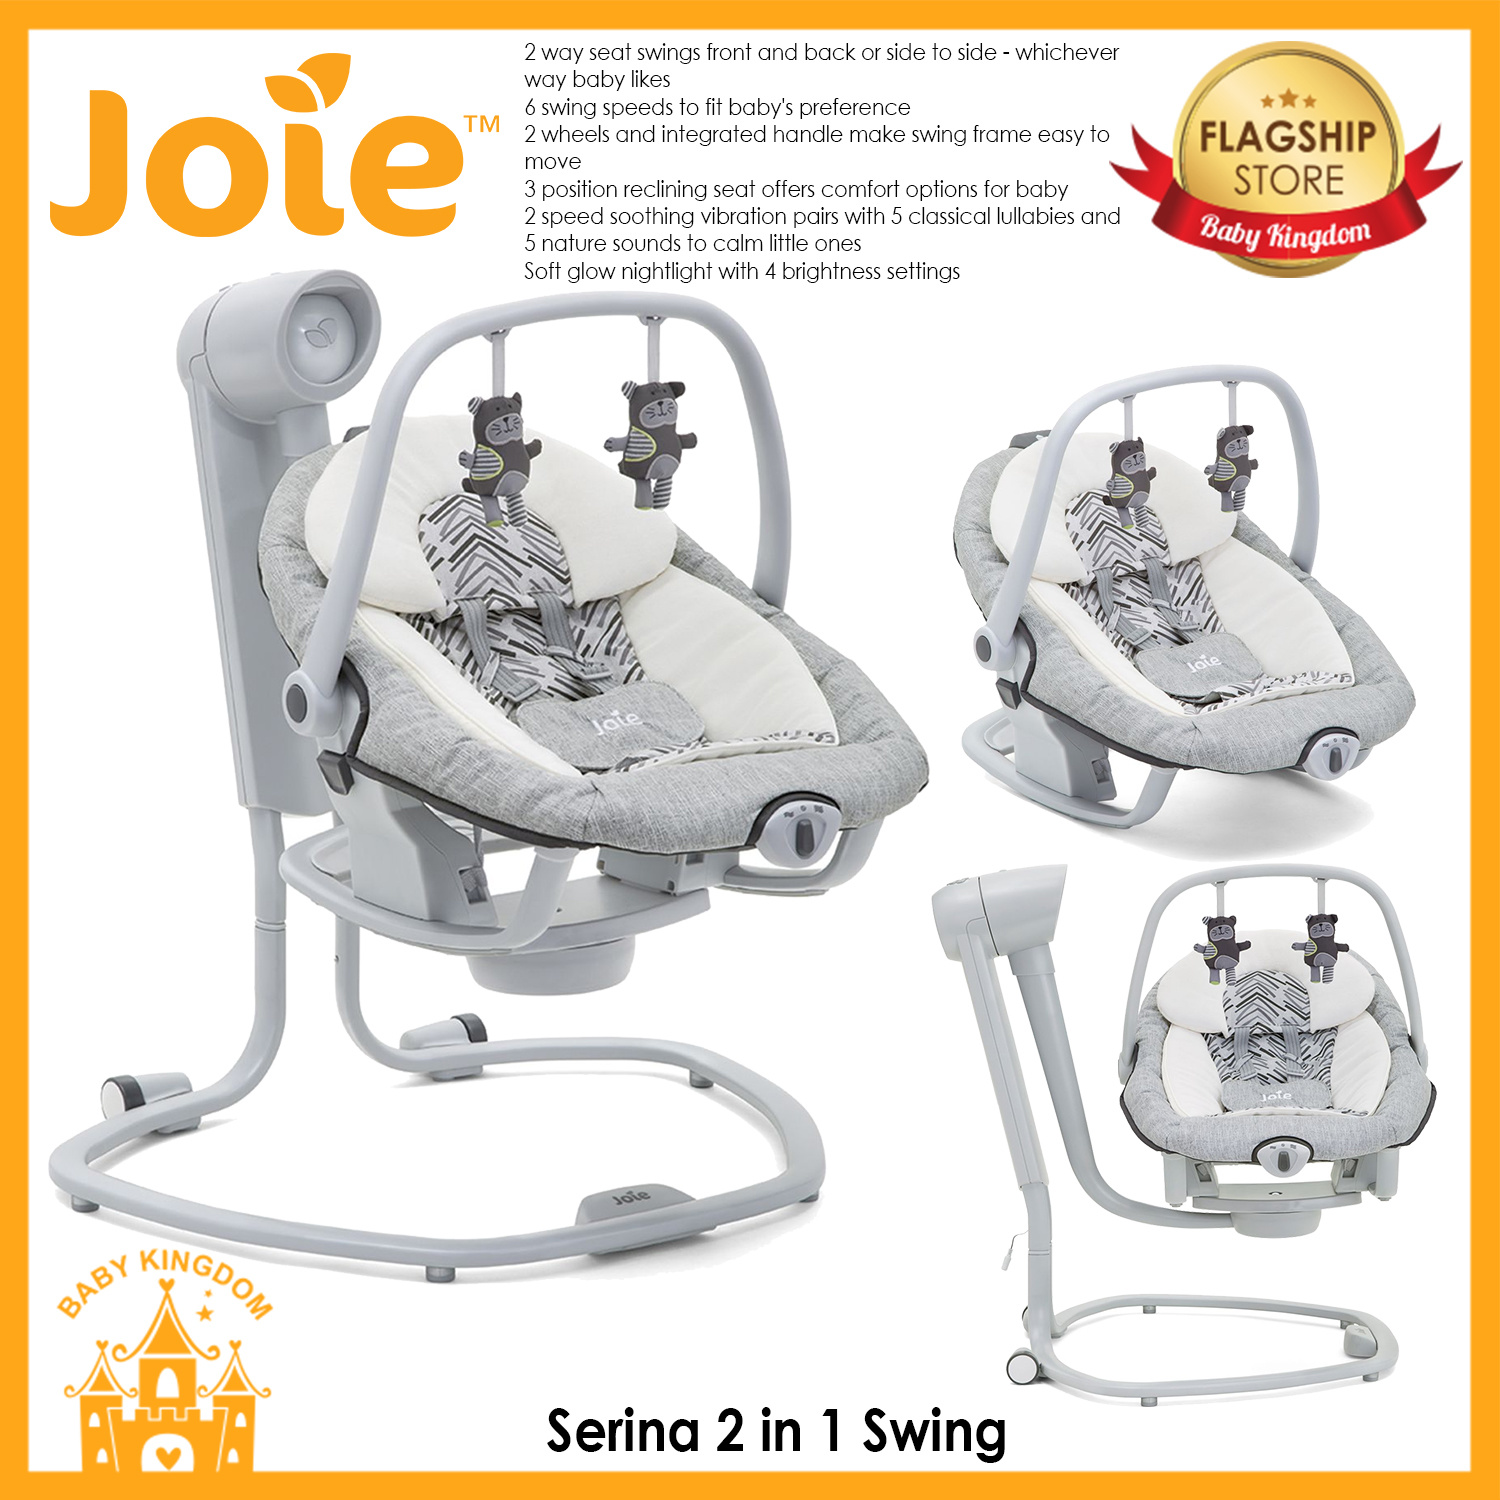 Joie Baby Swing Rocker Joiejoie Serina 2 In 1 Swing Abstract Arrows